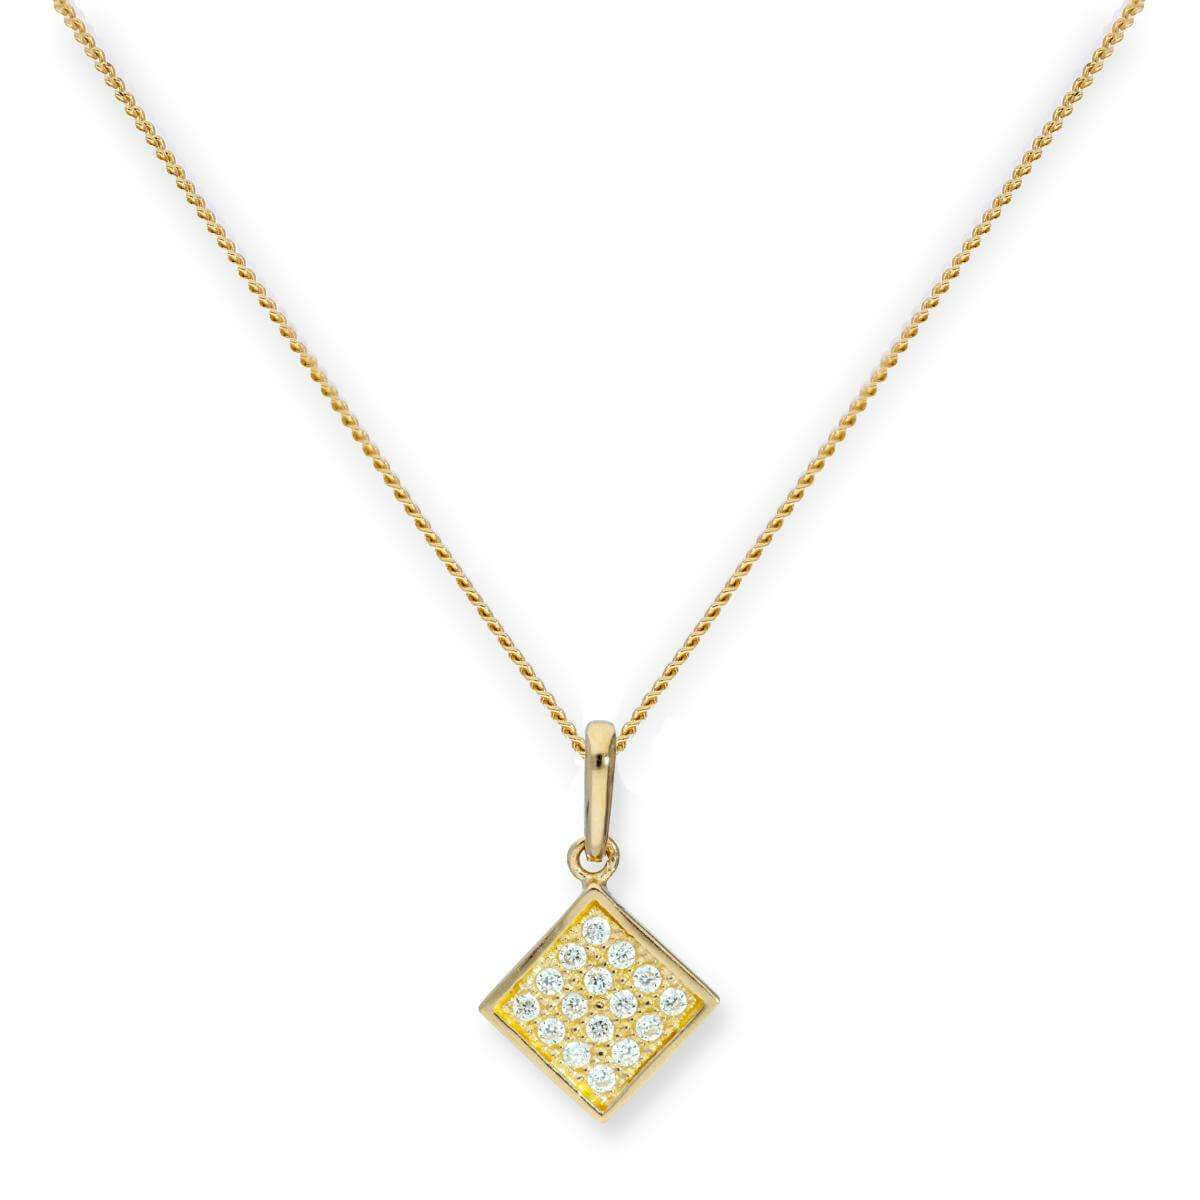 9ct Gold & Clear CZ Crystal Flat Square Pendant Necklace 16 - 20 Inches